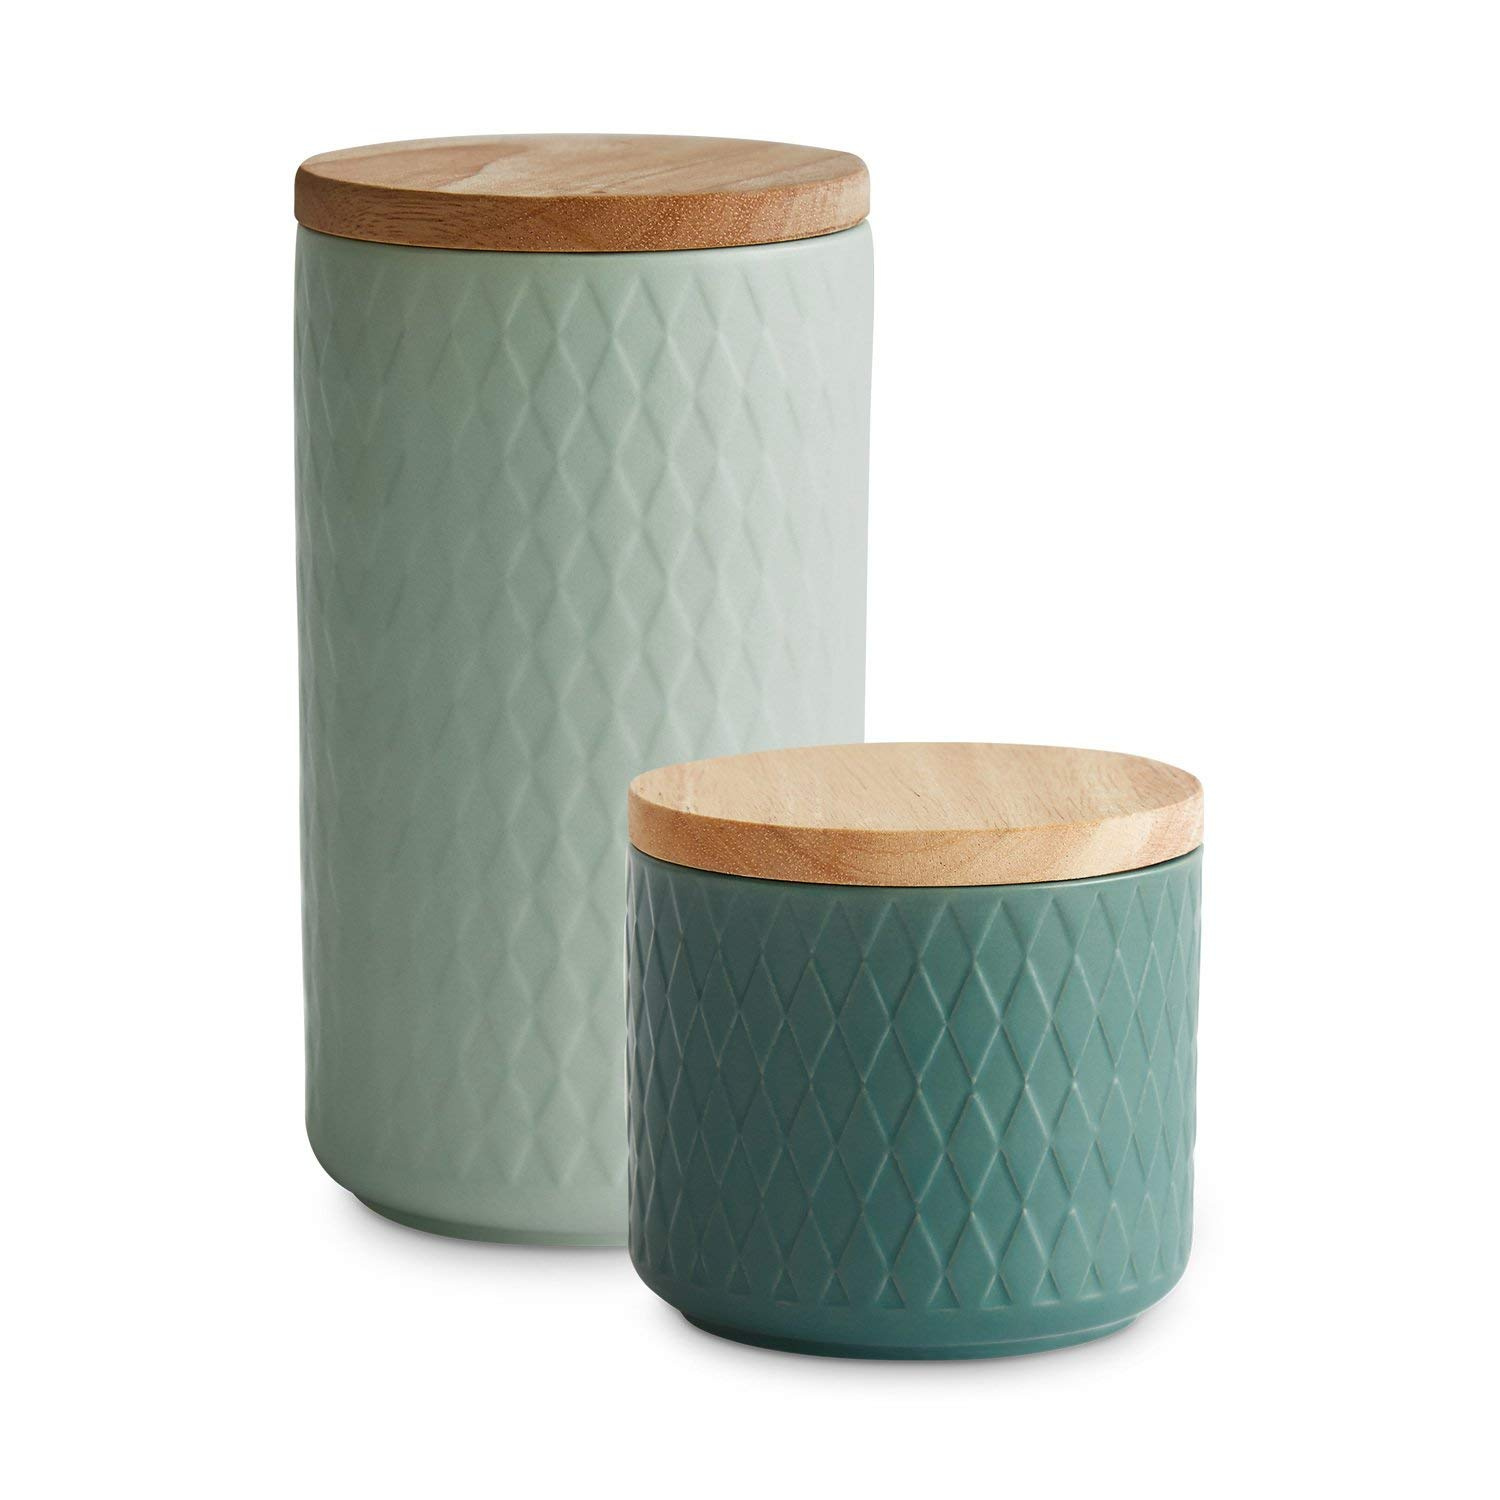 Ceramic Storage Jar With A Wooden Lid Nordic Reef By Springlane Kitchen |  Air Tight Rubberwood Lid | Storage Container, Capacity Between 400 Ml And 1  Litre ...